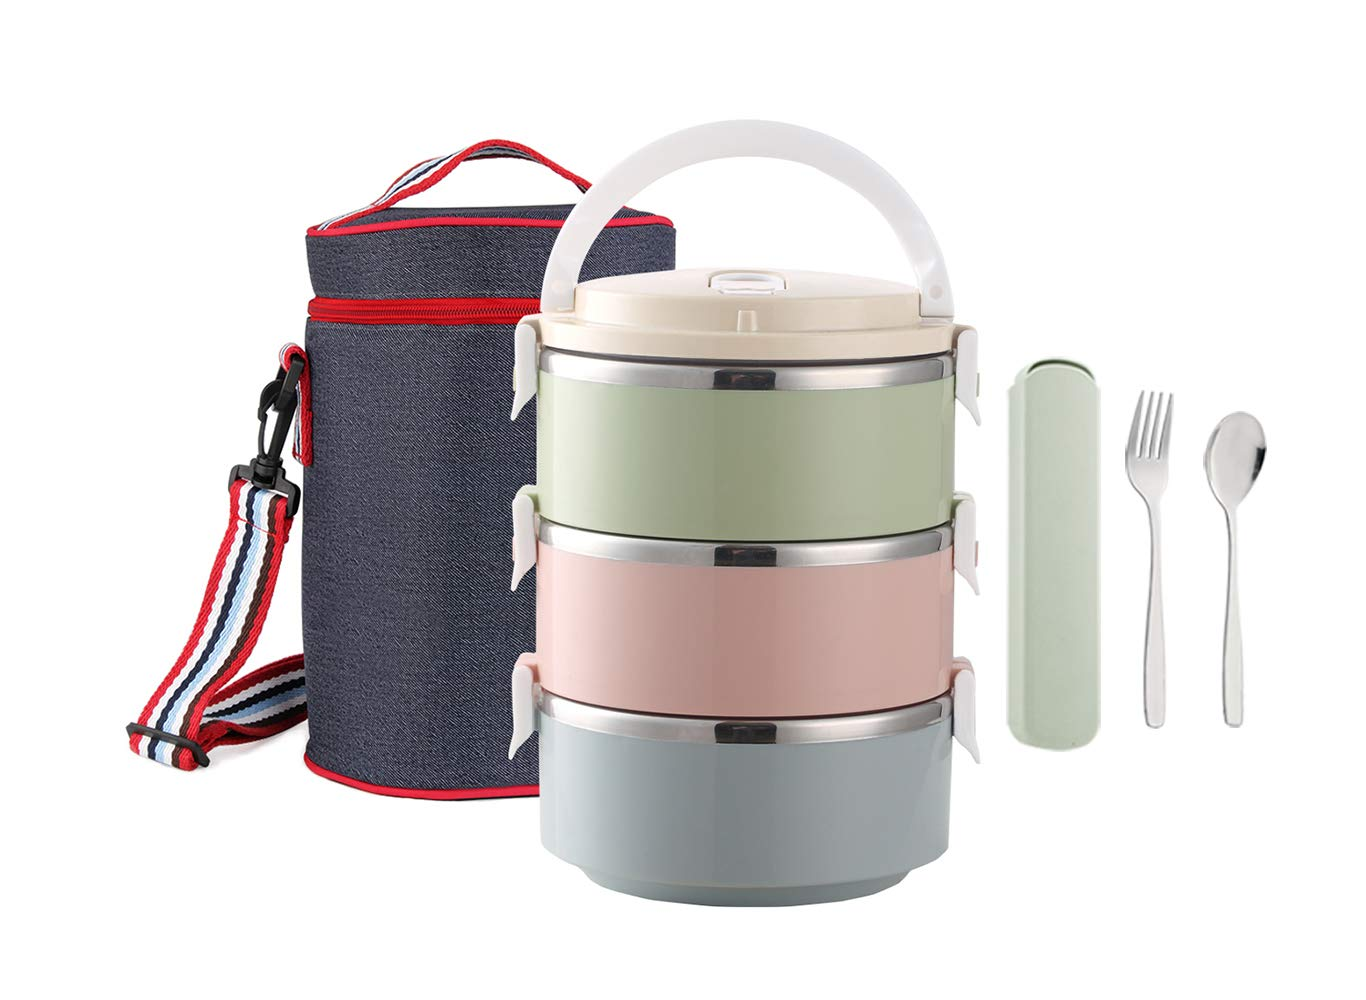 WORTHBUY Bento Lunch Box Stainless Steel Leakproof Stackable Lunch Box with Insulated Bag and Reusable Flatware Set Food Storage Container for Adults(3-Tier)